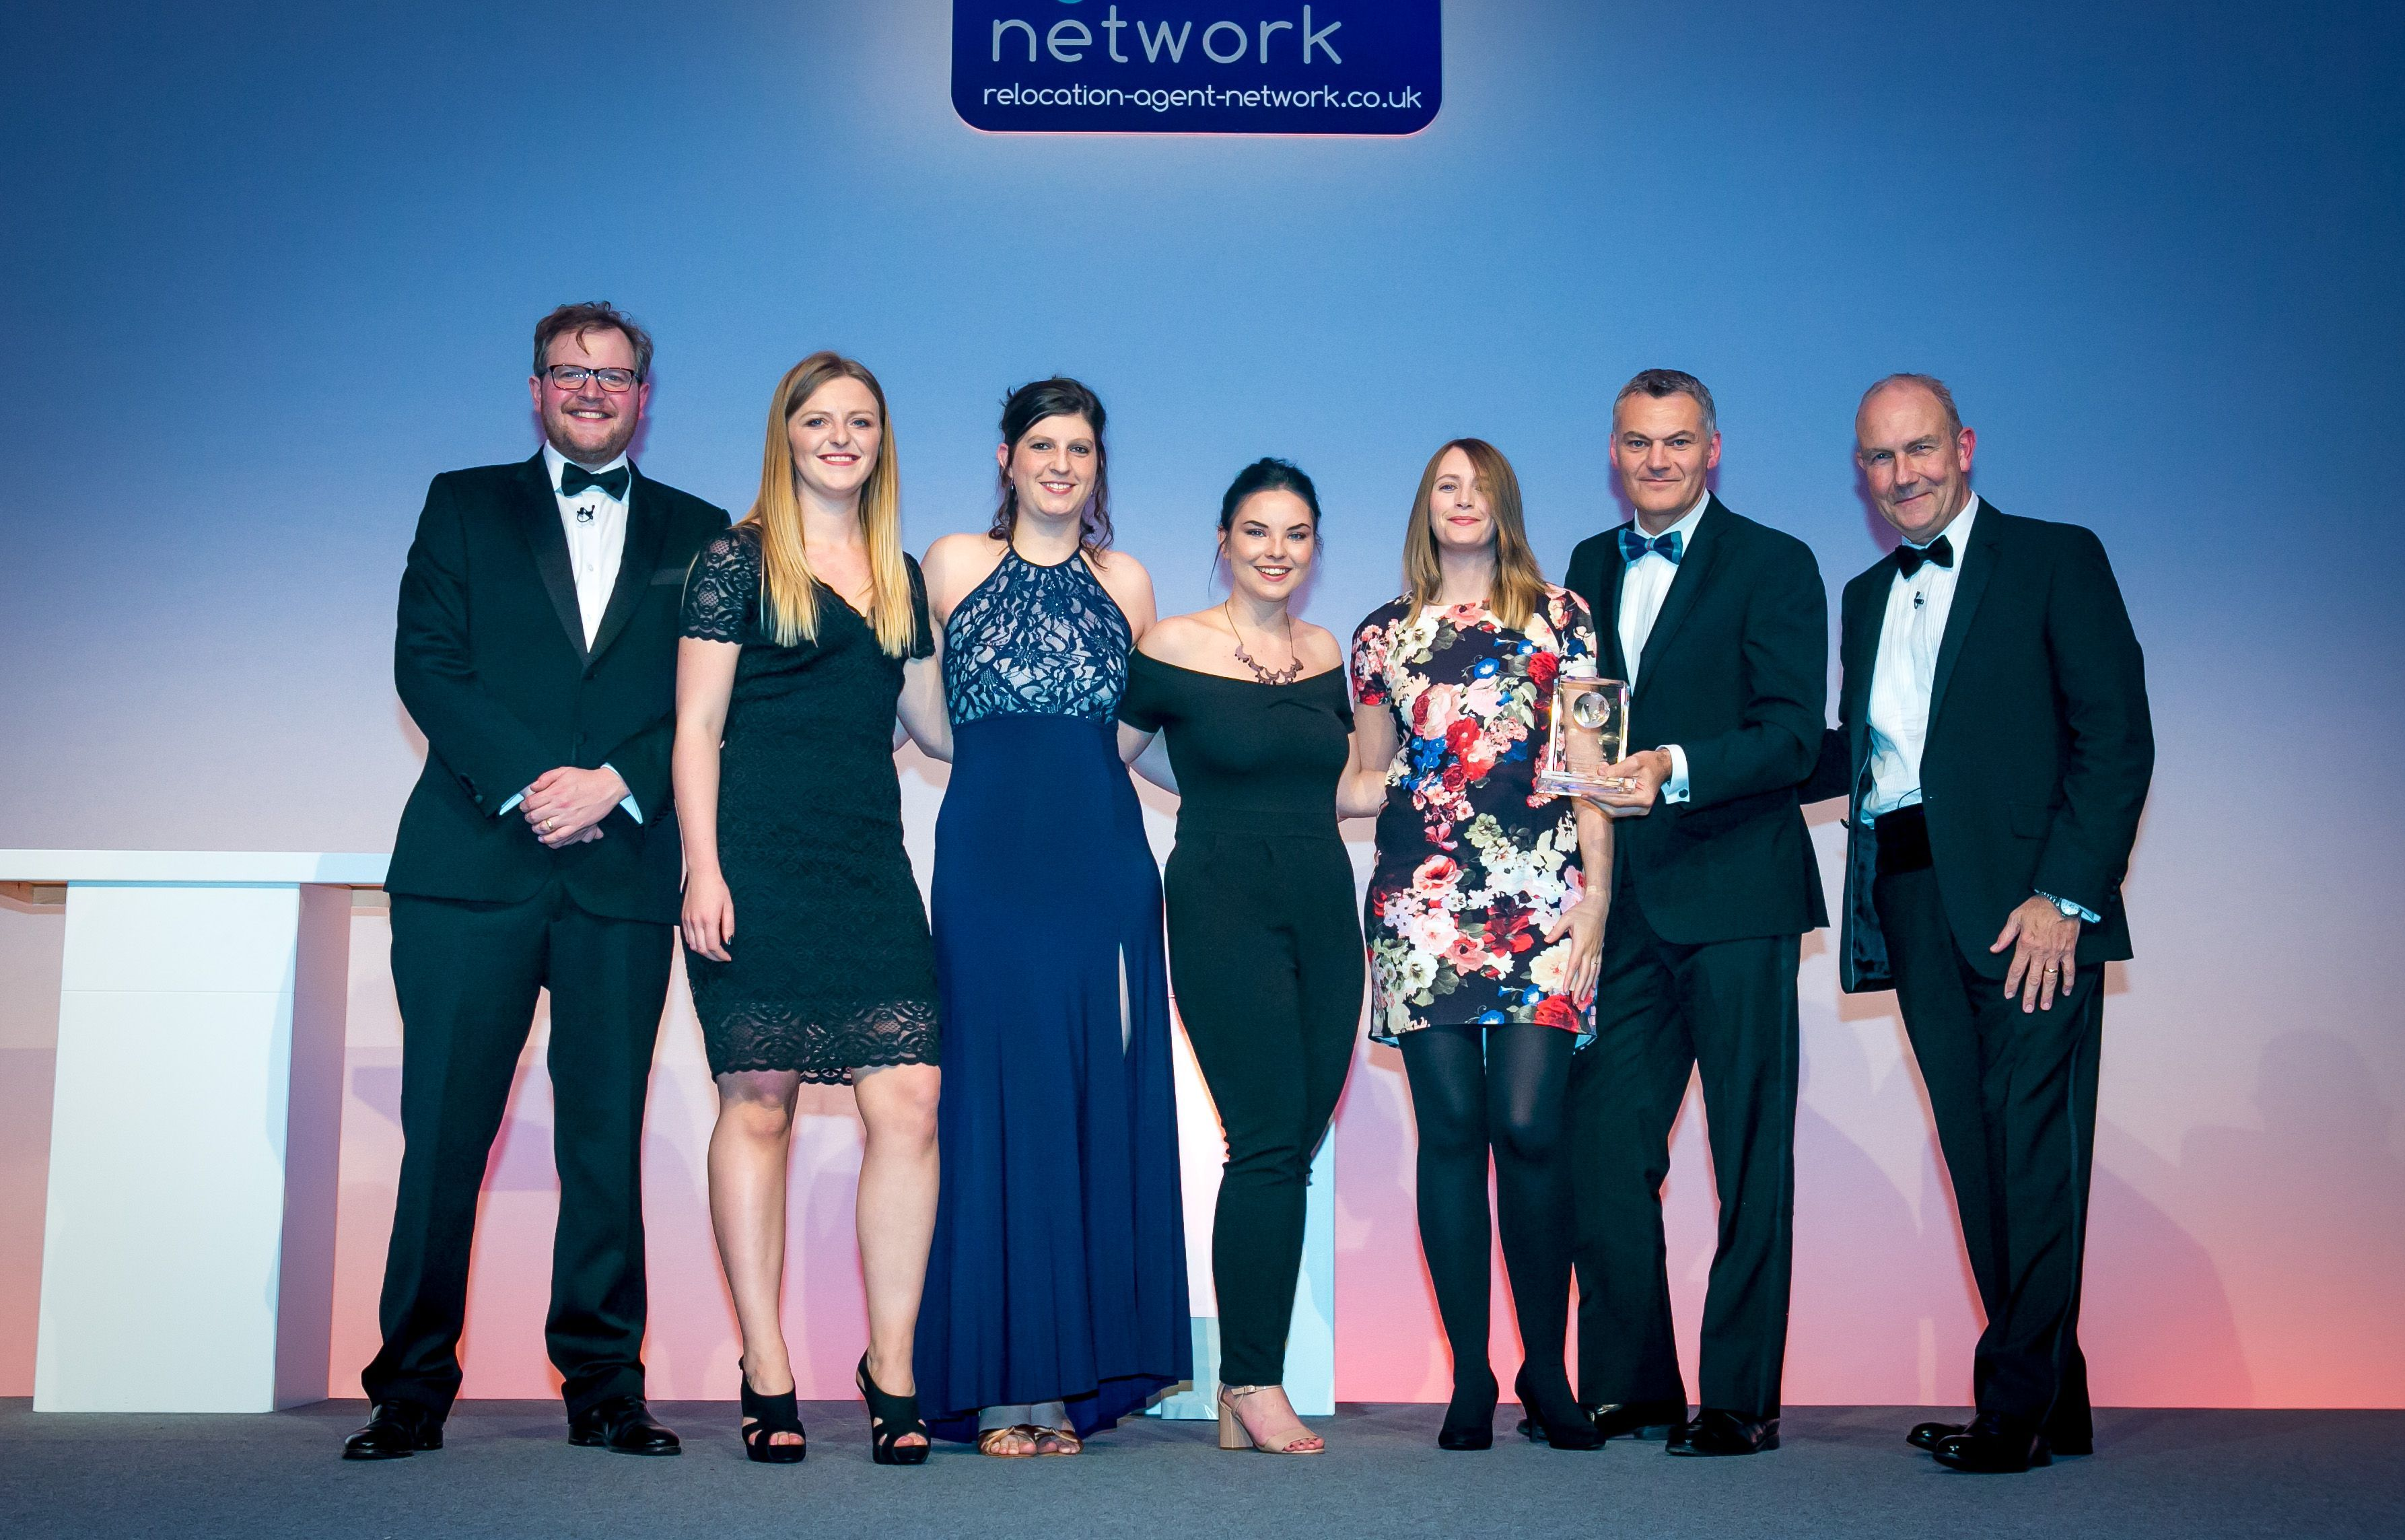 Webbers named BEST AGENT IN THE SOUTH WEST REGION and Wins CUSTOMER RELOCATION AWARD at the Relocation Agent Network Awards, London.